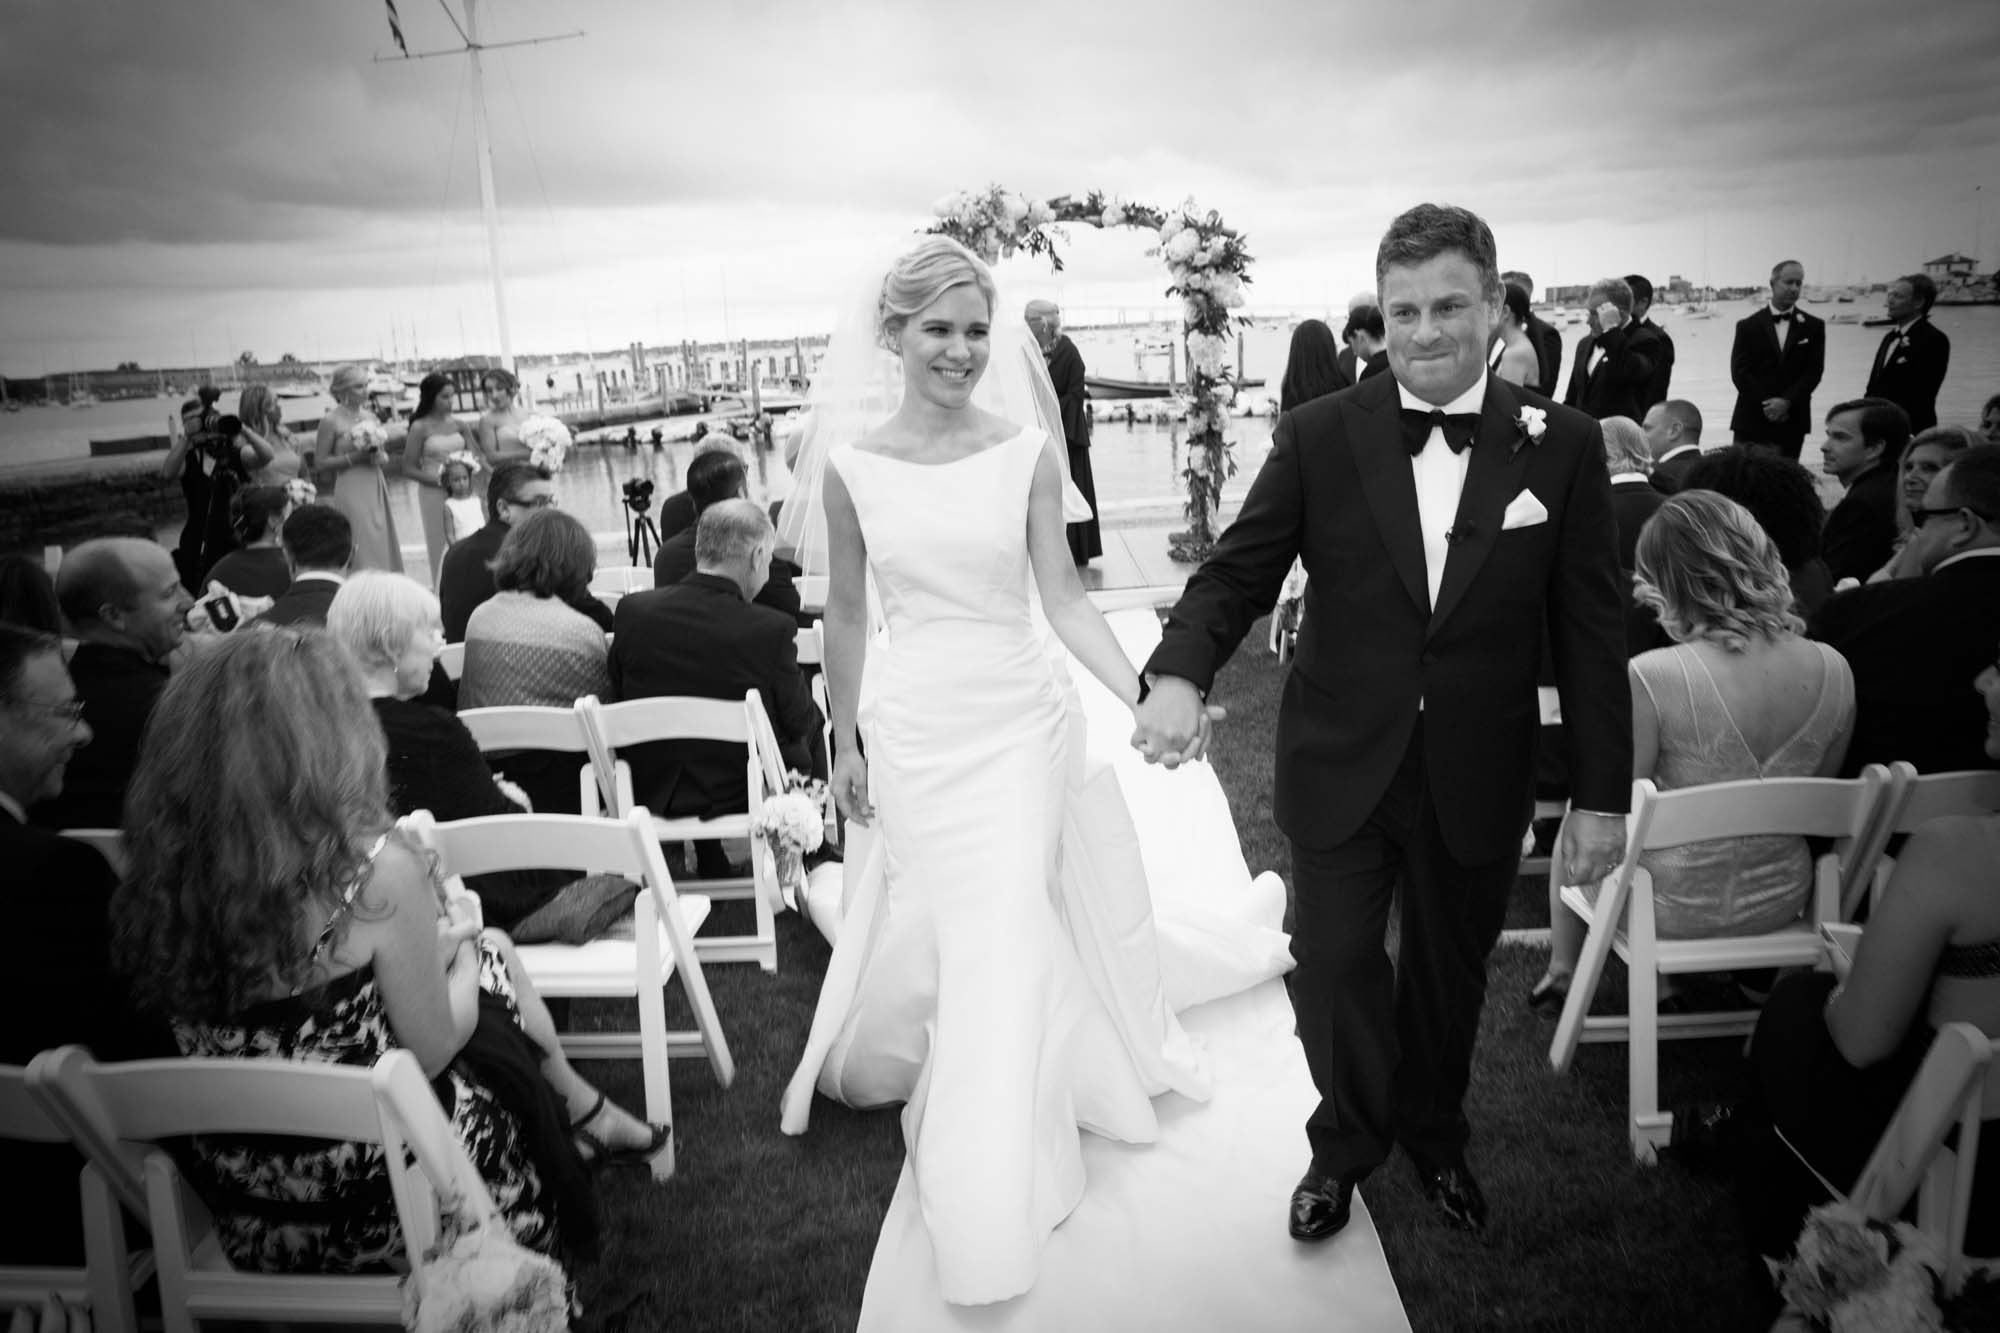 Newport-Rhode-Island-Wedding-Jamie-Levine-Photography-26.jpg